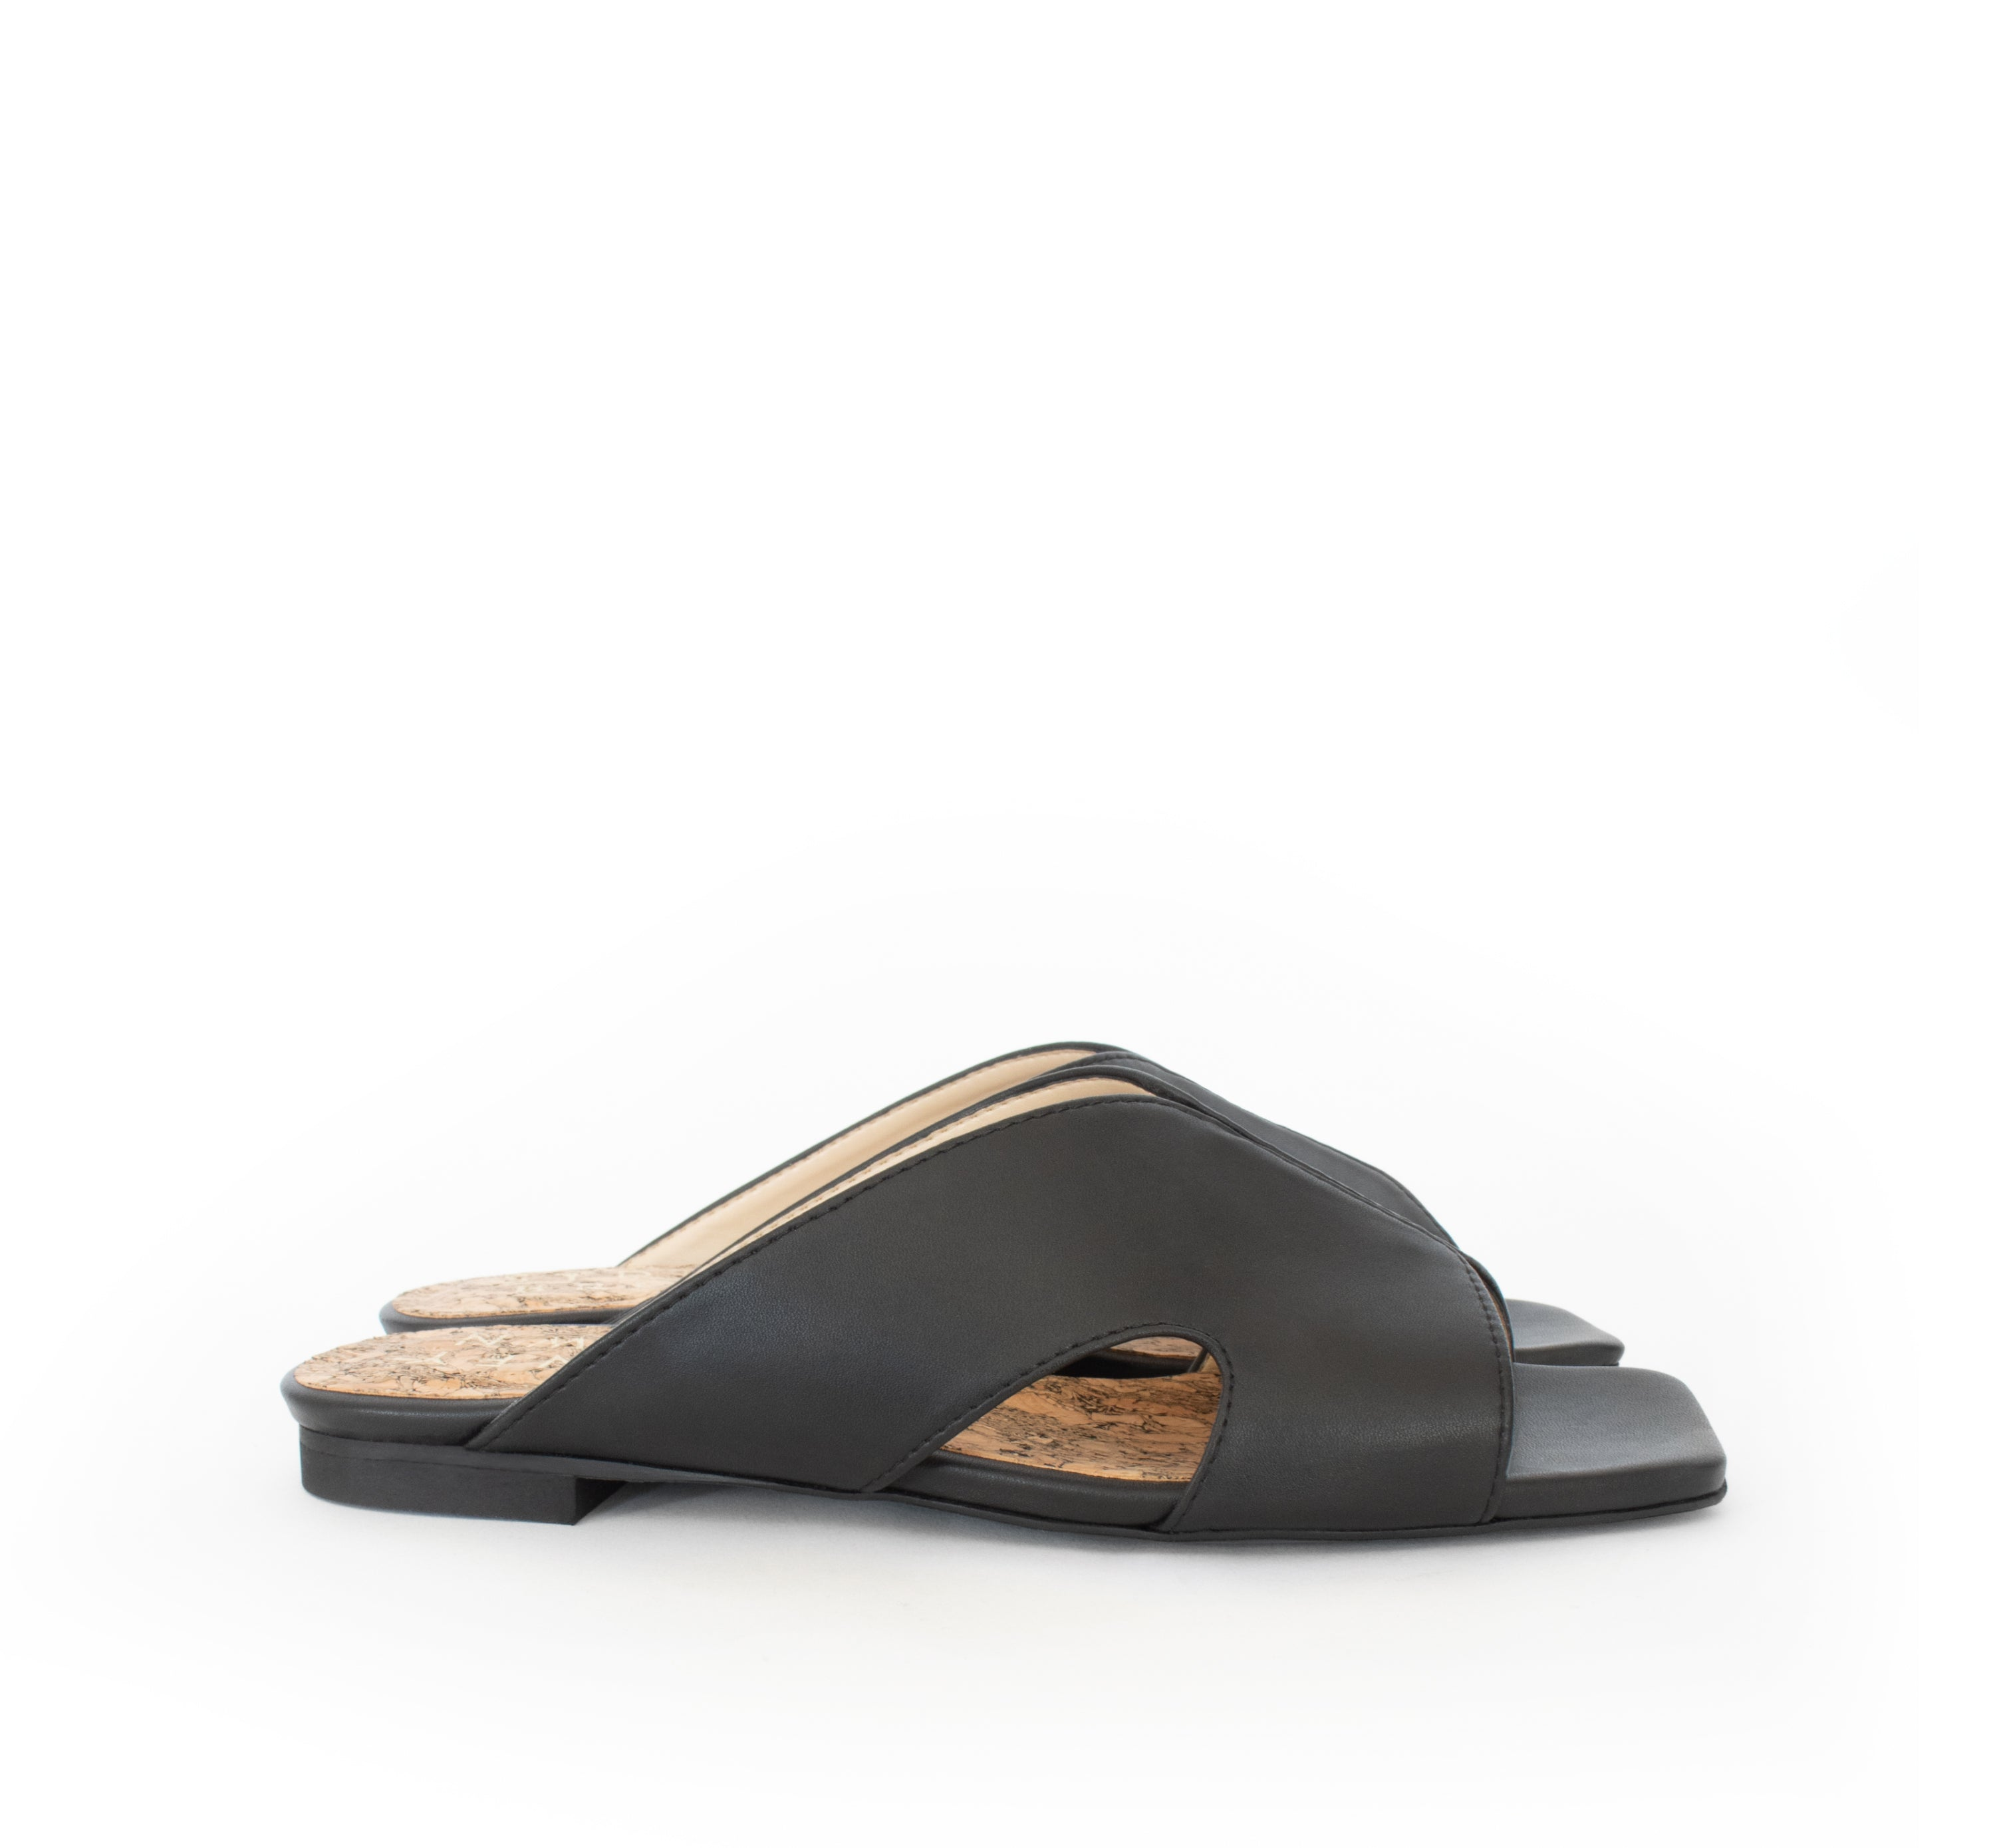 Circle Slides in eco black faux-nappa and breathable lining. Luxury vegan flats. Sydney Brown Spring Summer 2019. Sustainable, eco-friendly SS19 fashion